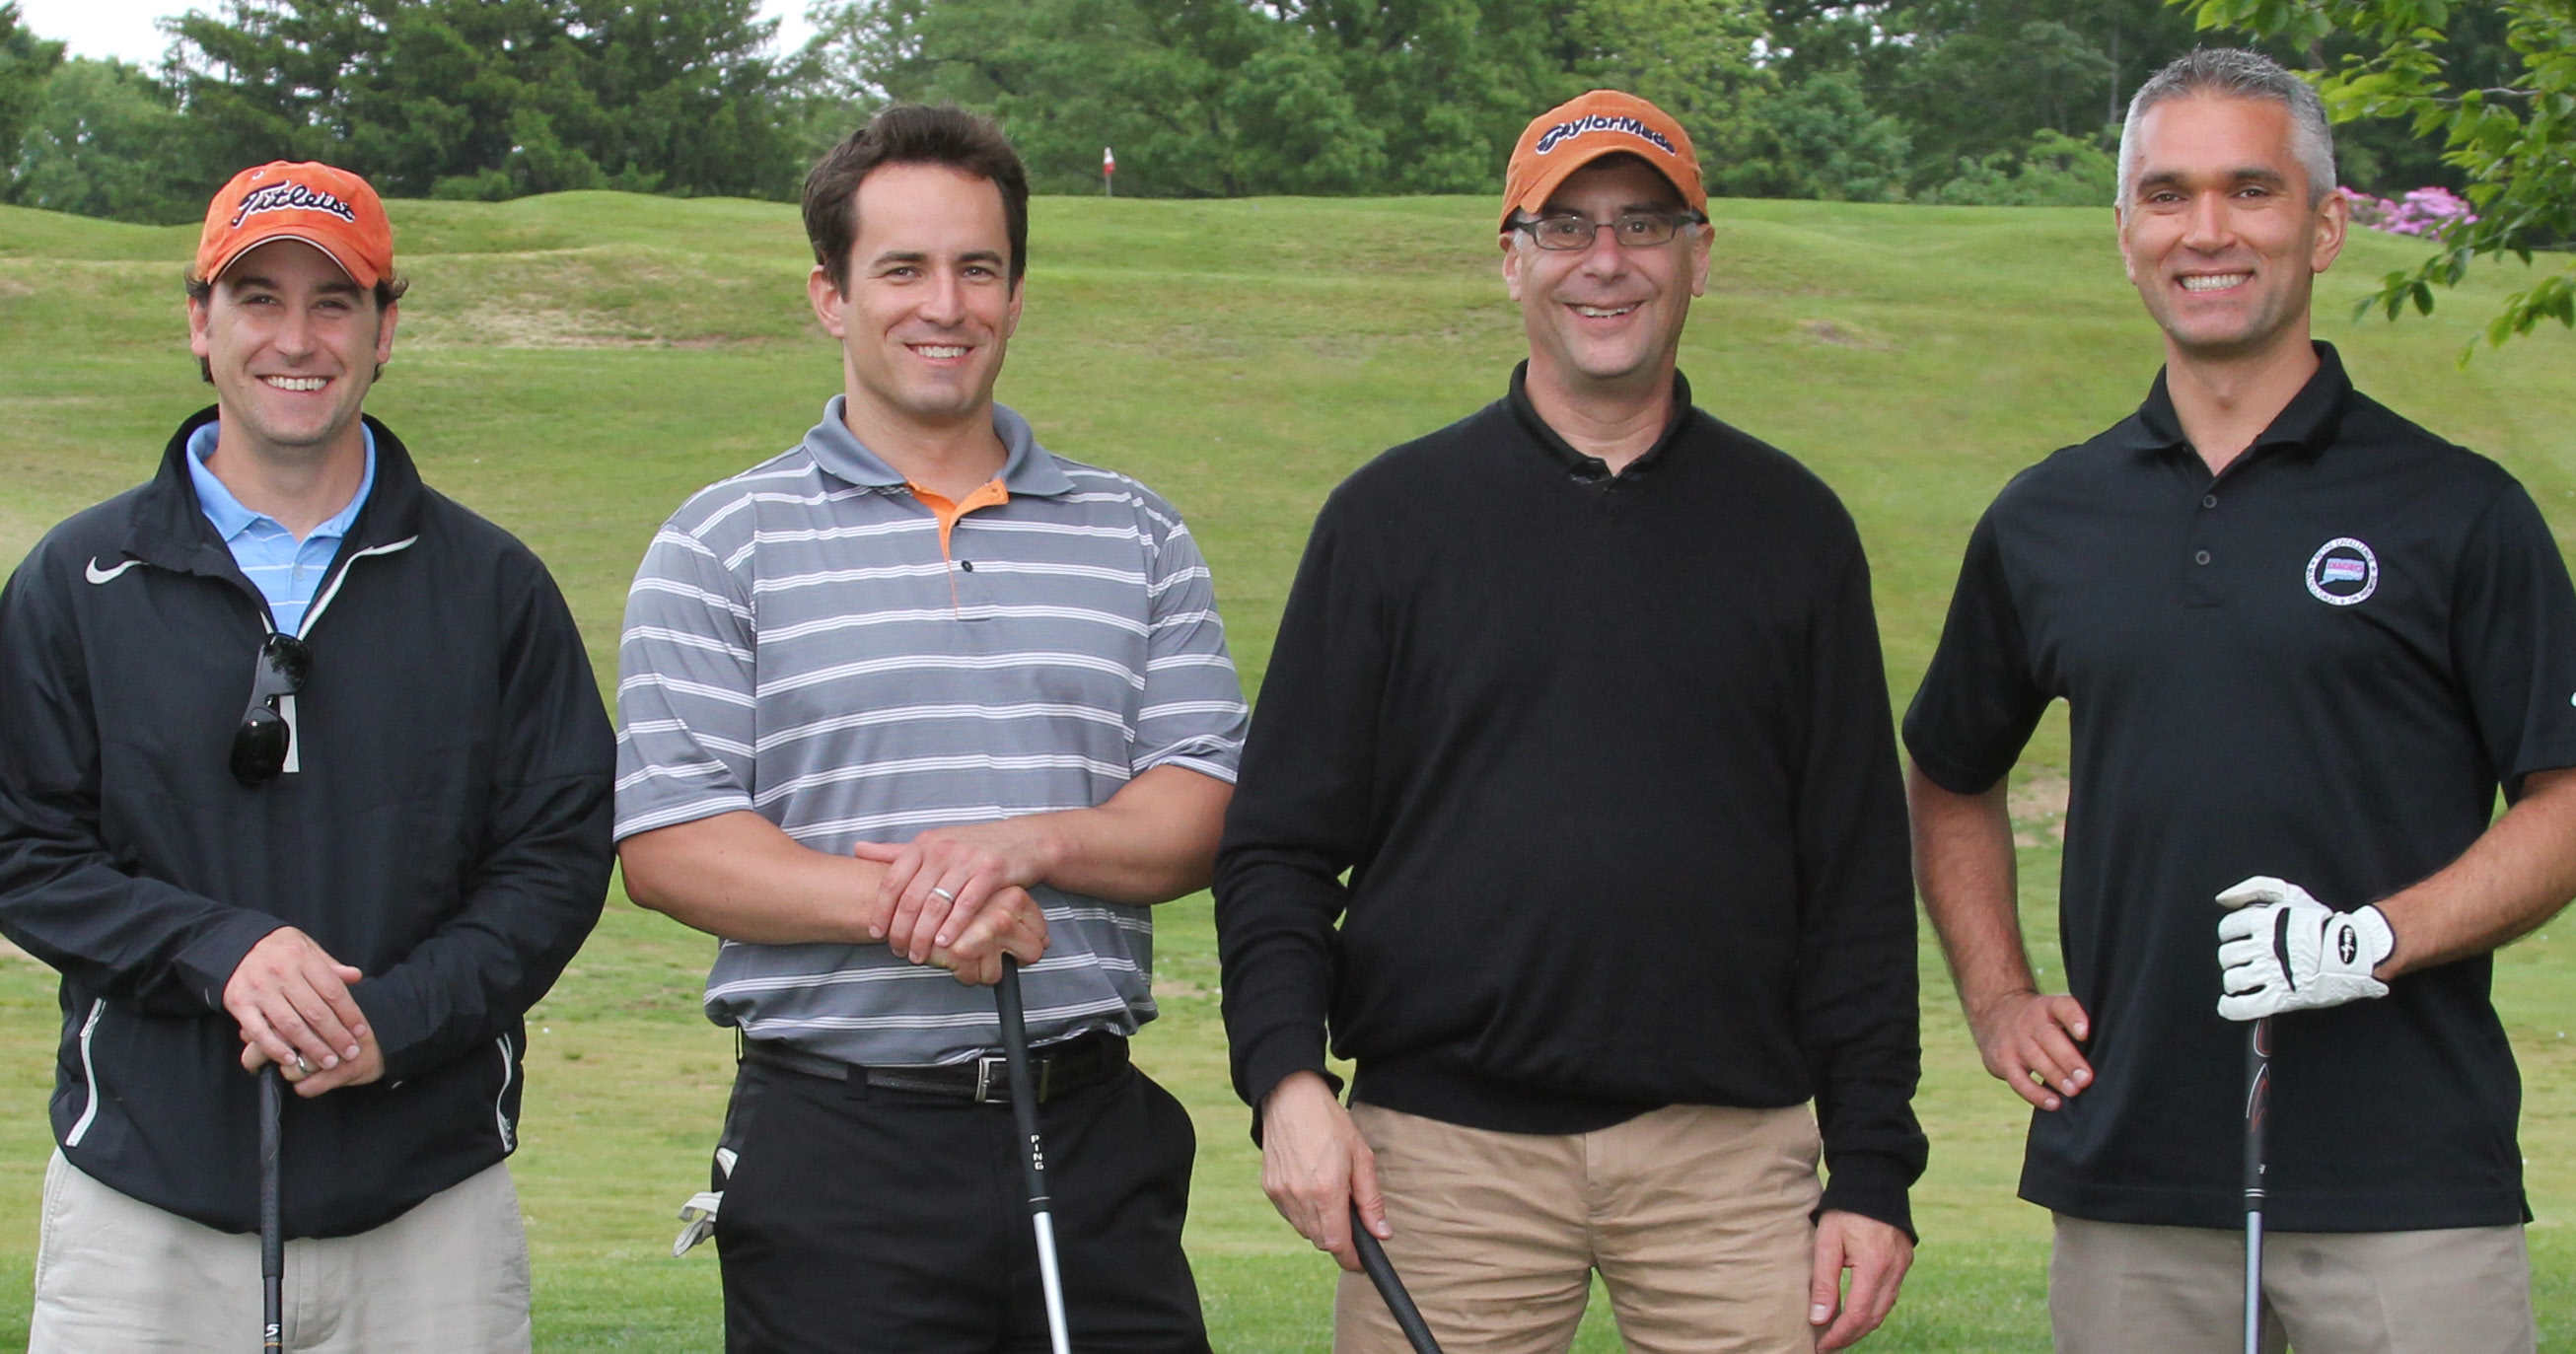 AROUND TOWN: Charity Golf Outing Raises 50K